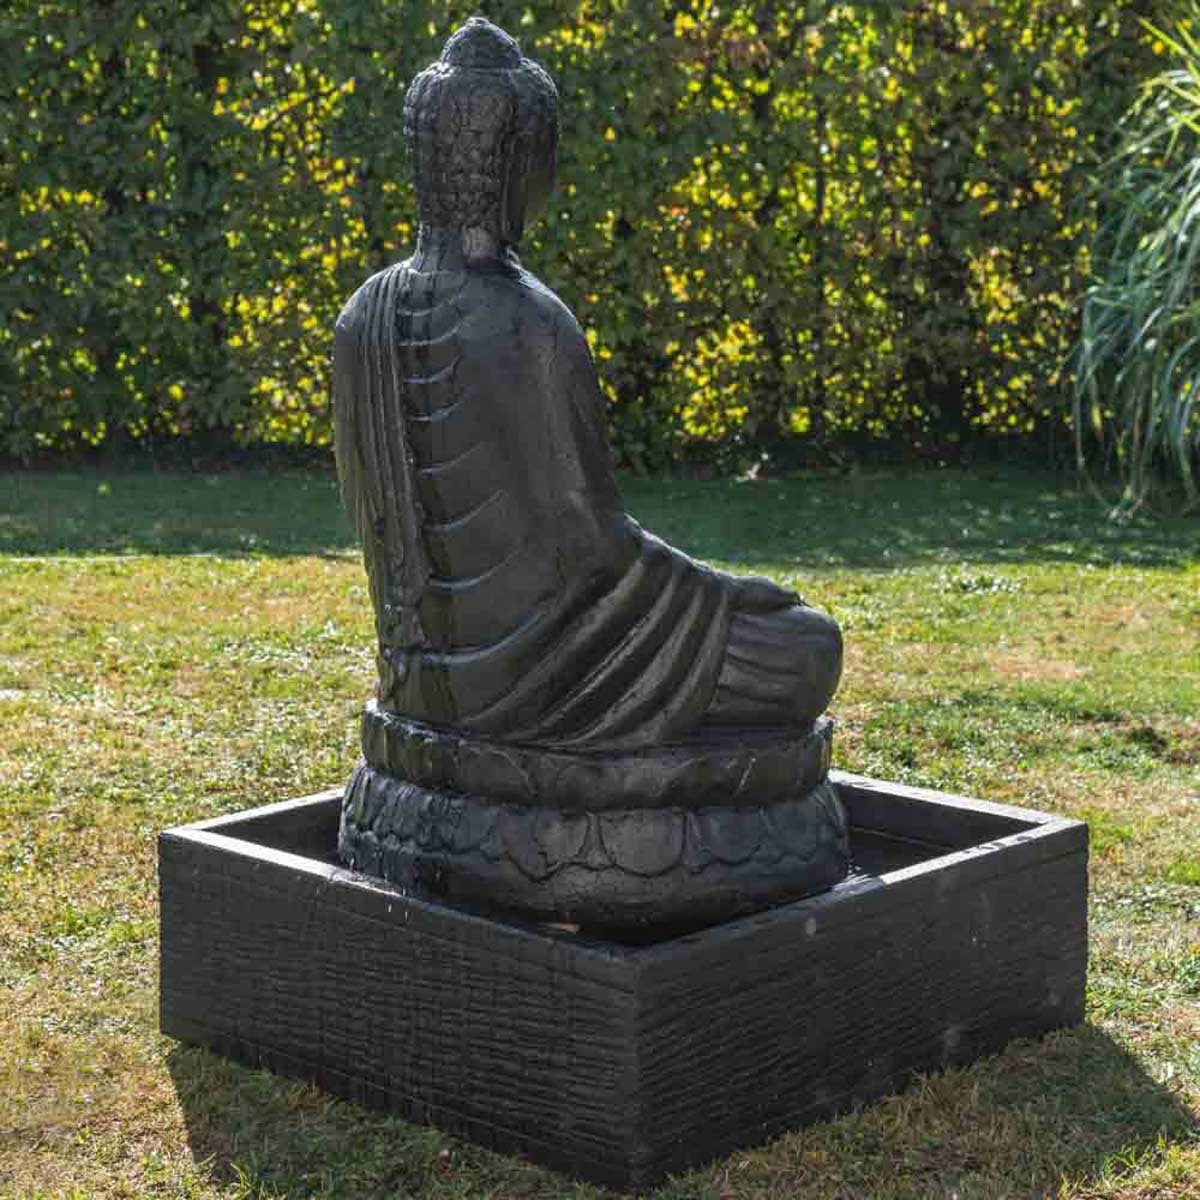 fontaine de jardin fontaine avec bassin bouddha assis patin noir 1 m 20. Black Bedroom Furniture Sets. Home Design Ideas